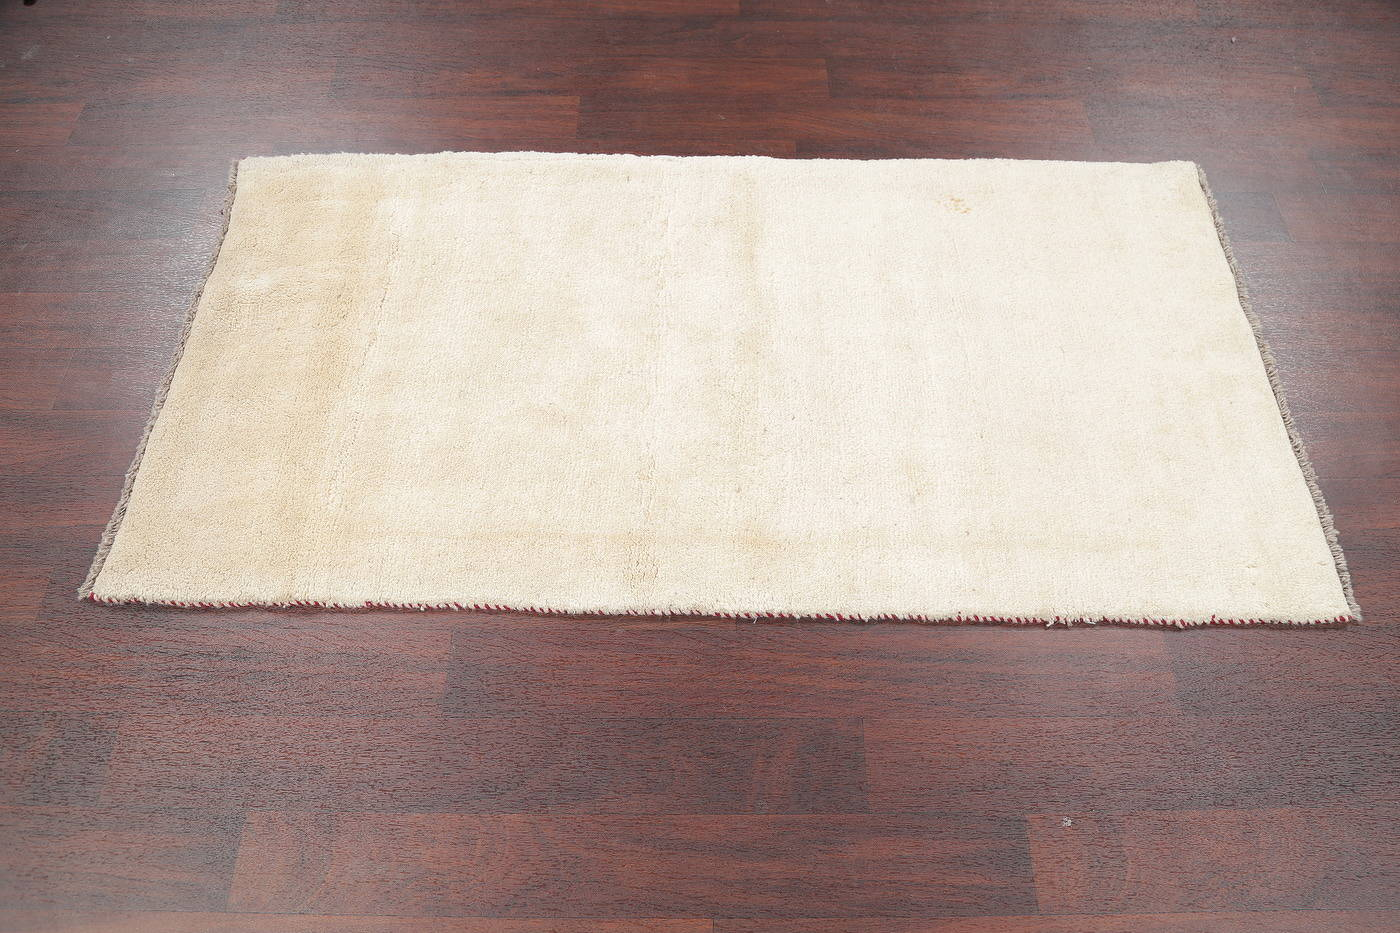 Hand-Knotted Solid Ivory Gabbeh Shiraz Persian Runner Rug 3x6 image 7